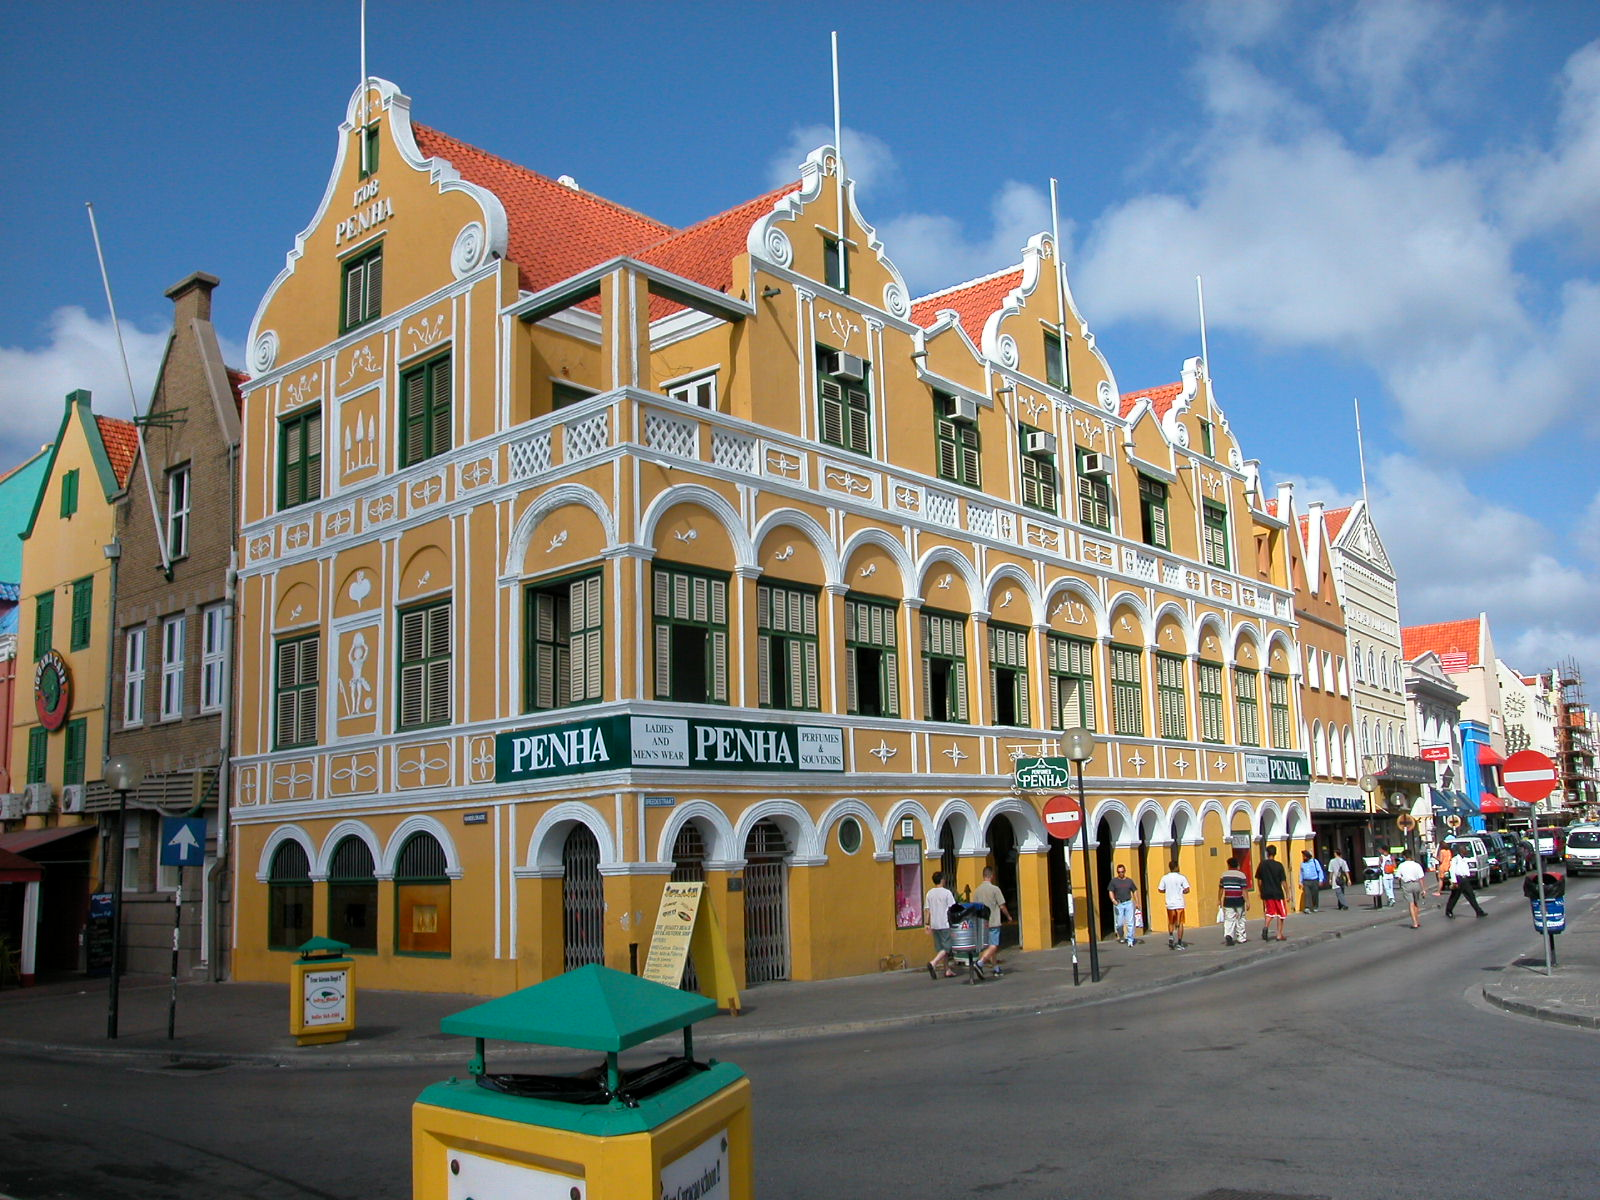 penha colony colonial antilles decorative houses shopping street highstreet high sunny caribbean yellow